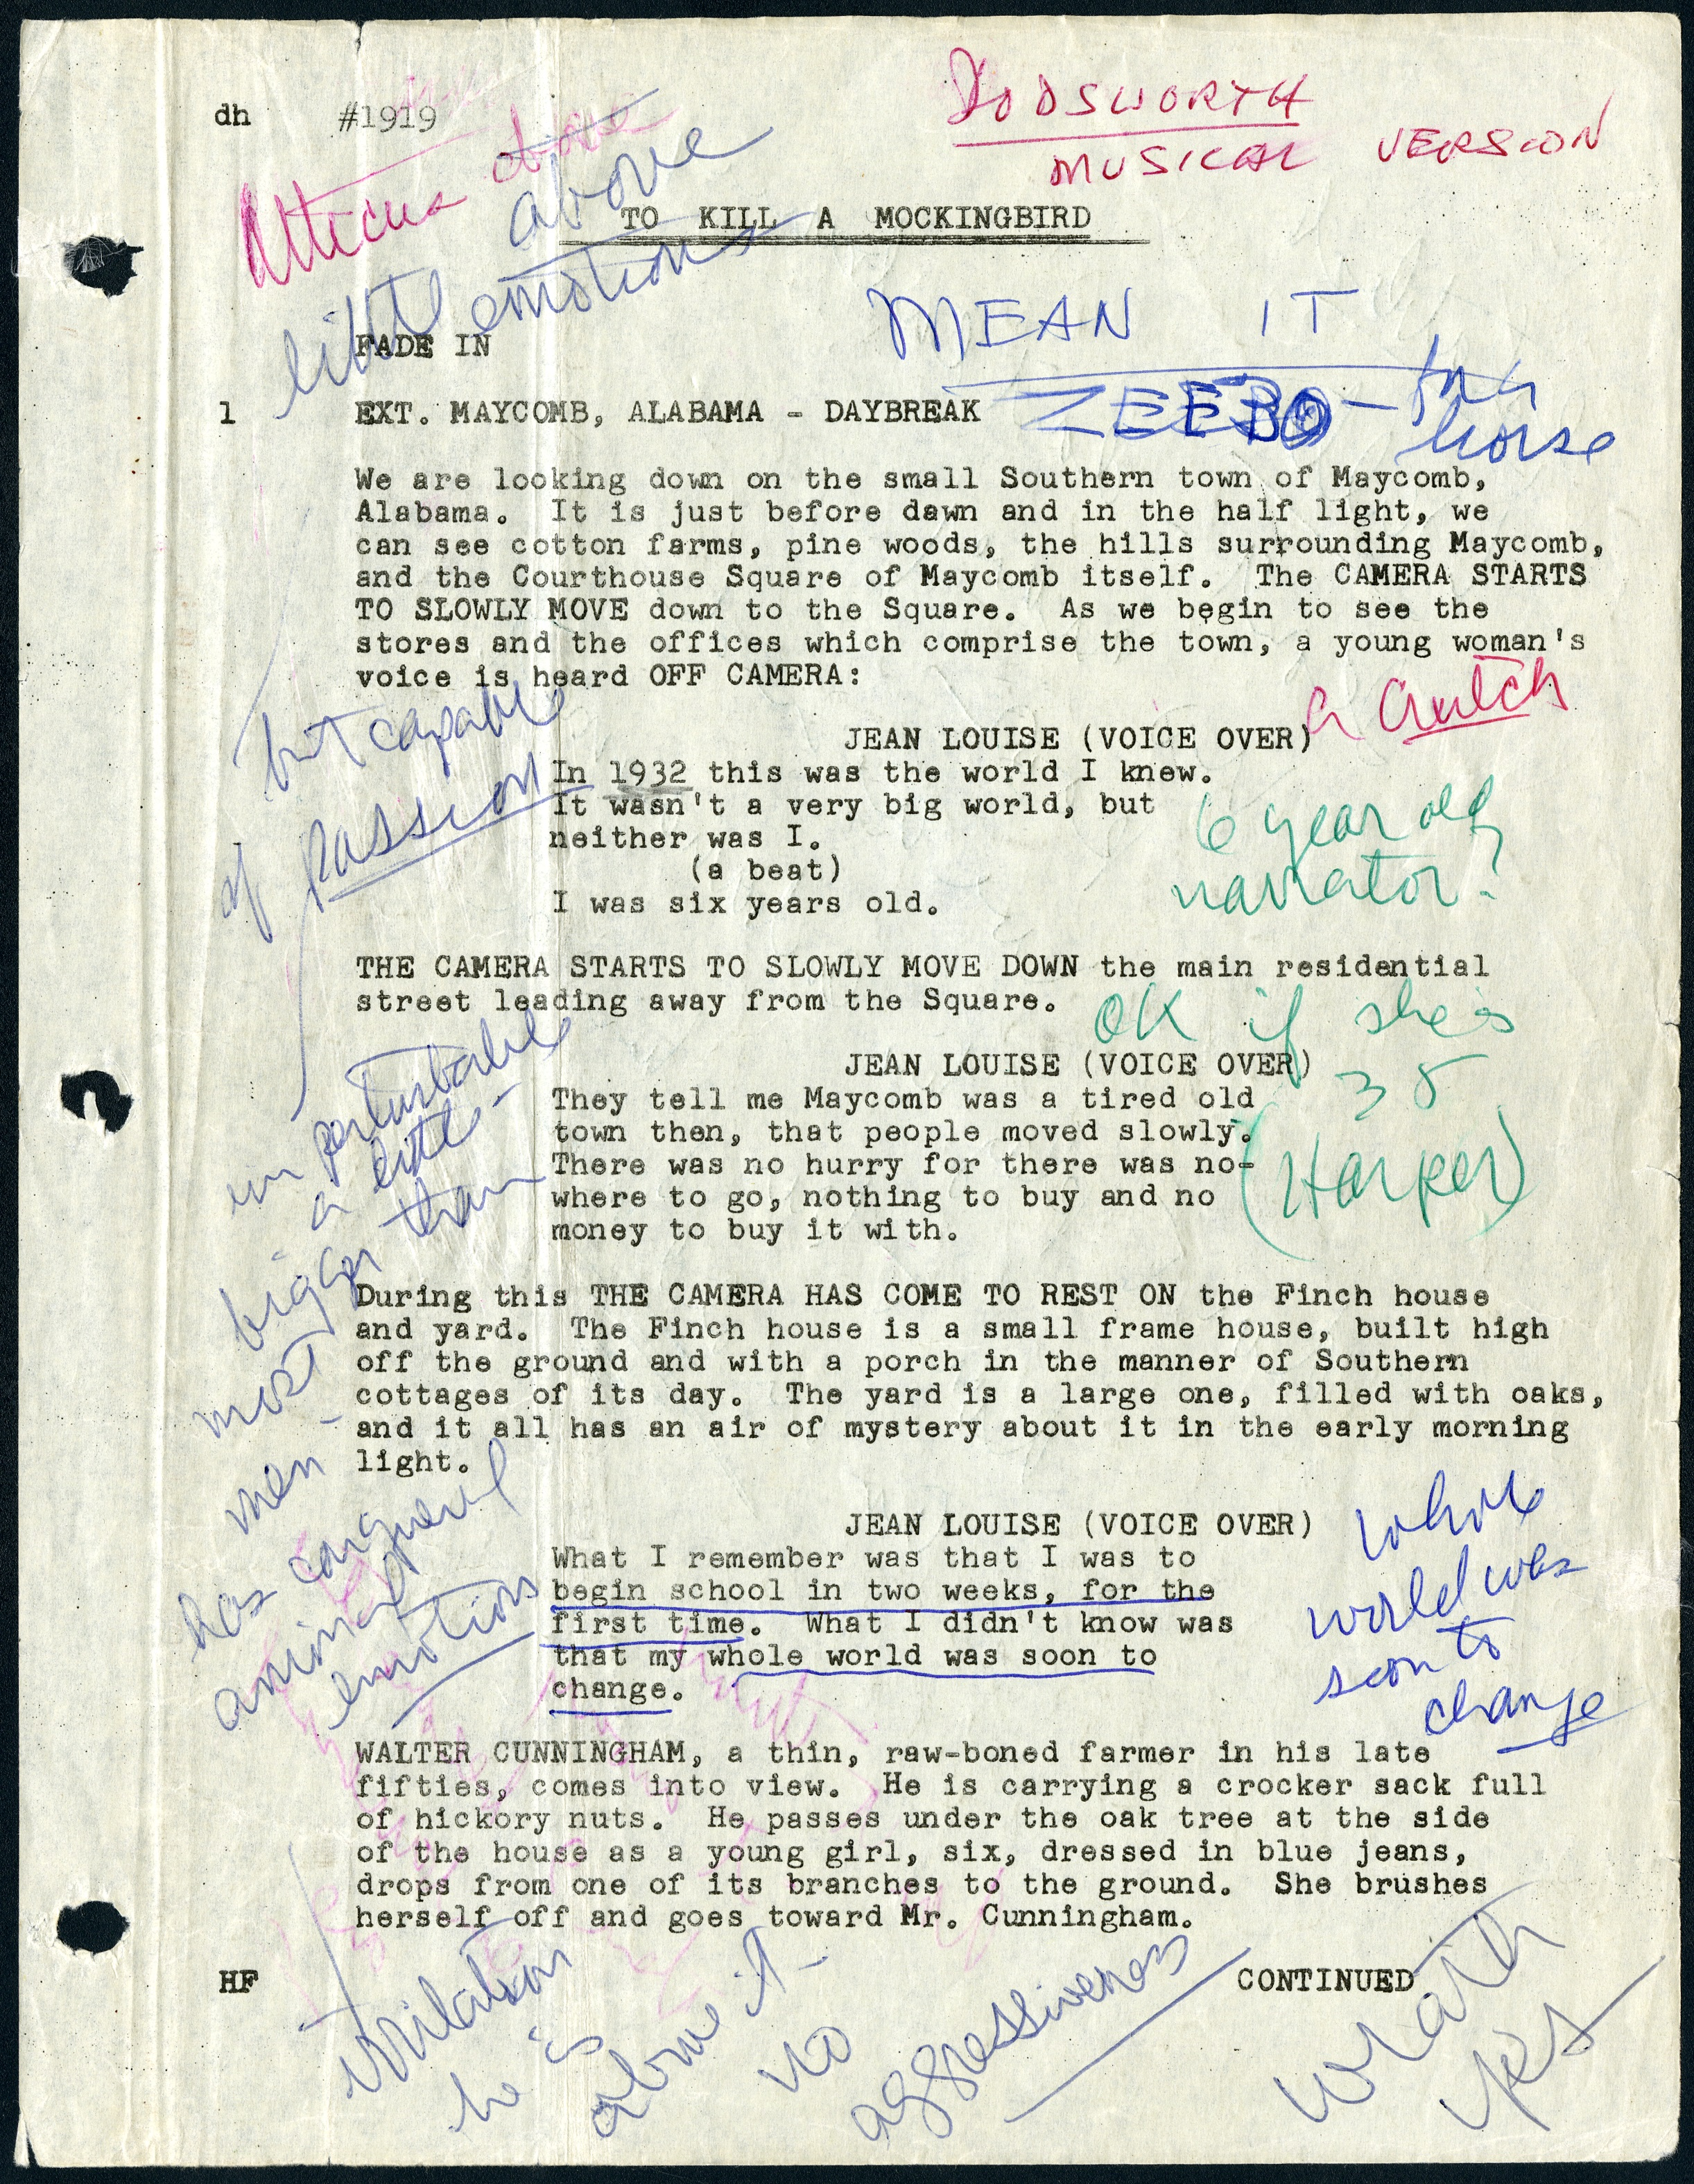 """A page from the script for """"To Kill a Mockingbird"""" (1962) annotated by Gregory Peck from the Gregory Peck Papers, courtesy of the Margaret Herrick Library.  The museum will look at the past, present and future of the movie industry."""